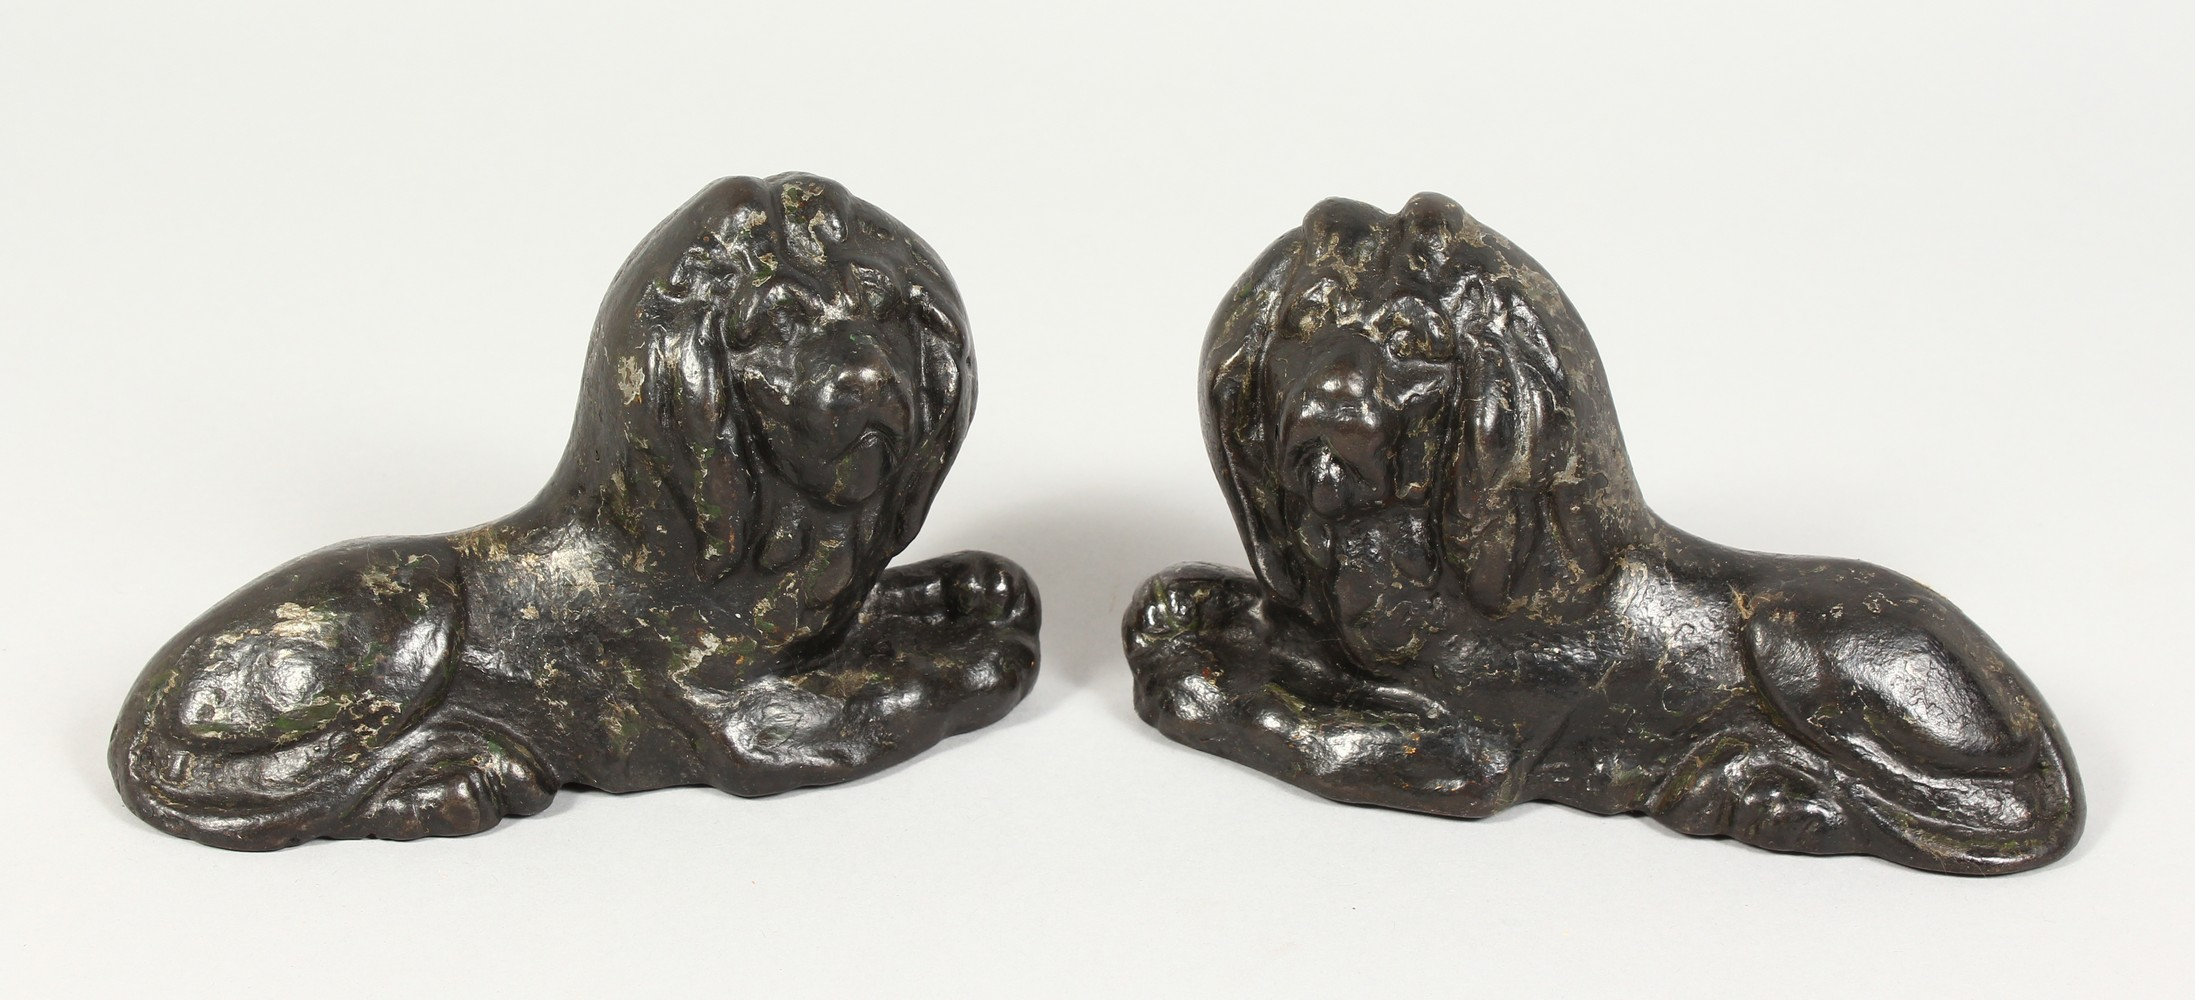 Lot 1358 - A PAIR OF 19TH CENTURY SMALL CAST IRON MODELS OF LIONS. 6ins long.